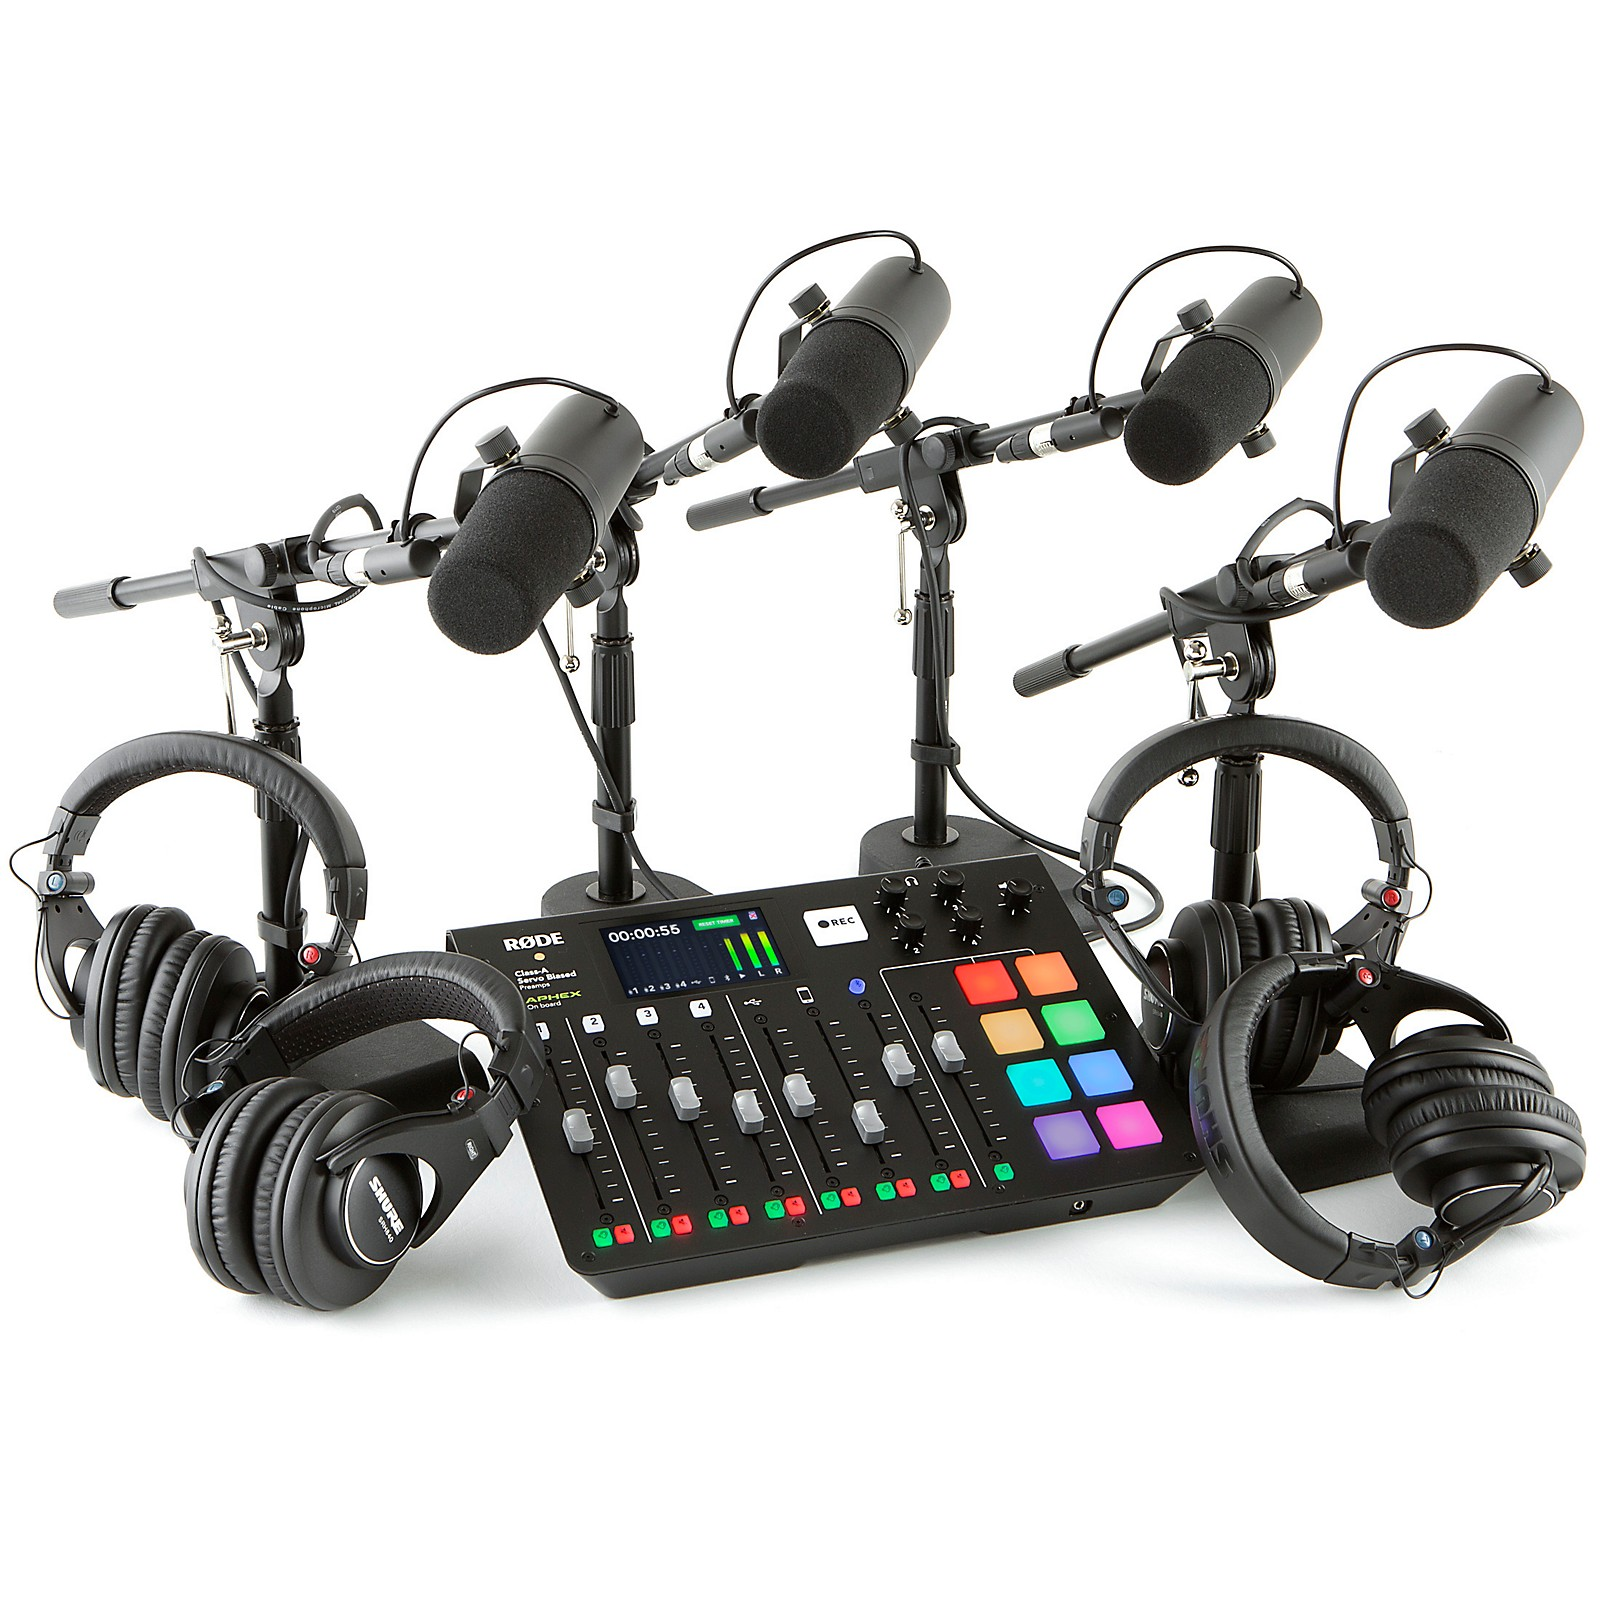 Rode Rodecaster Pro 4 Person Podcasting Bundle With SM7B & SRH840